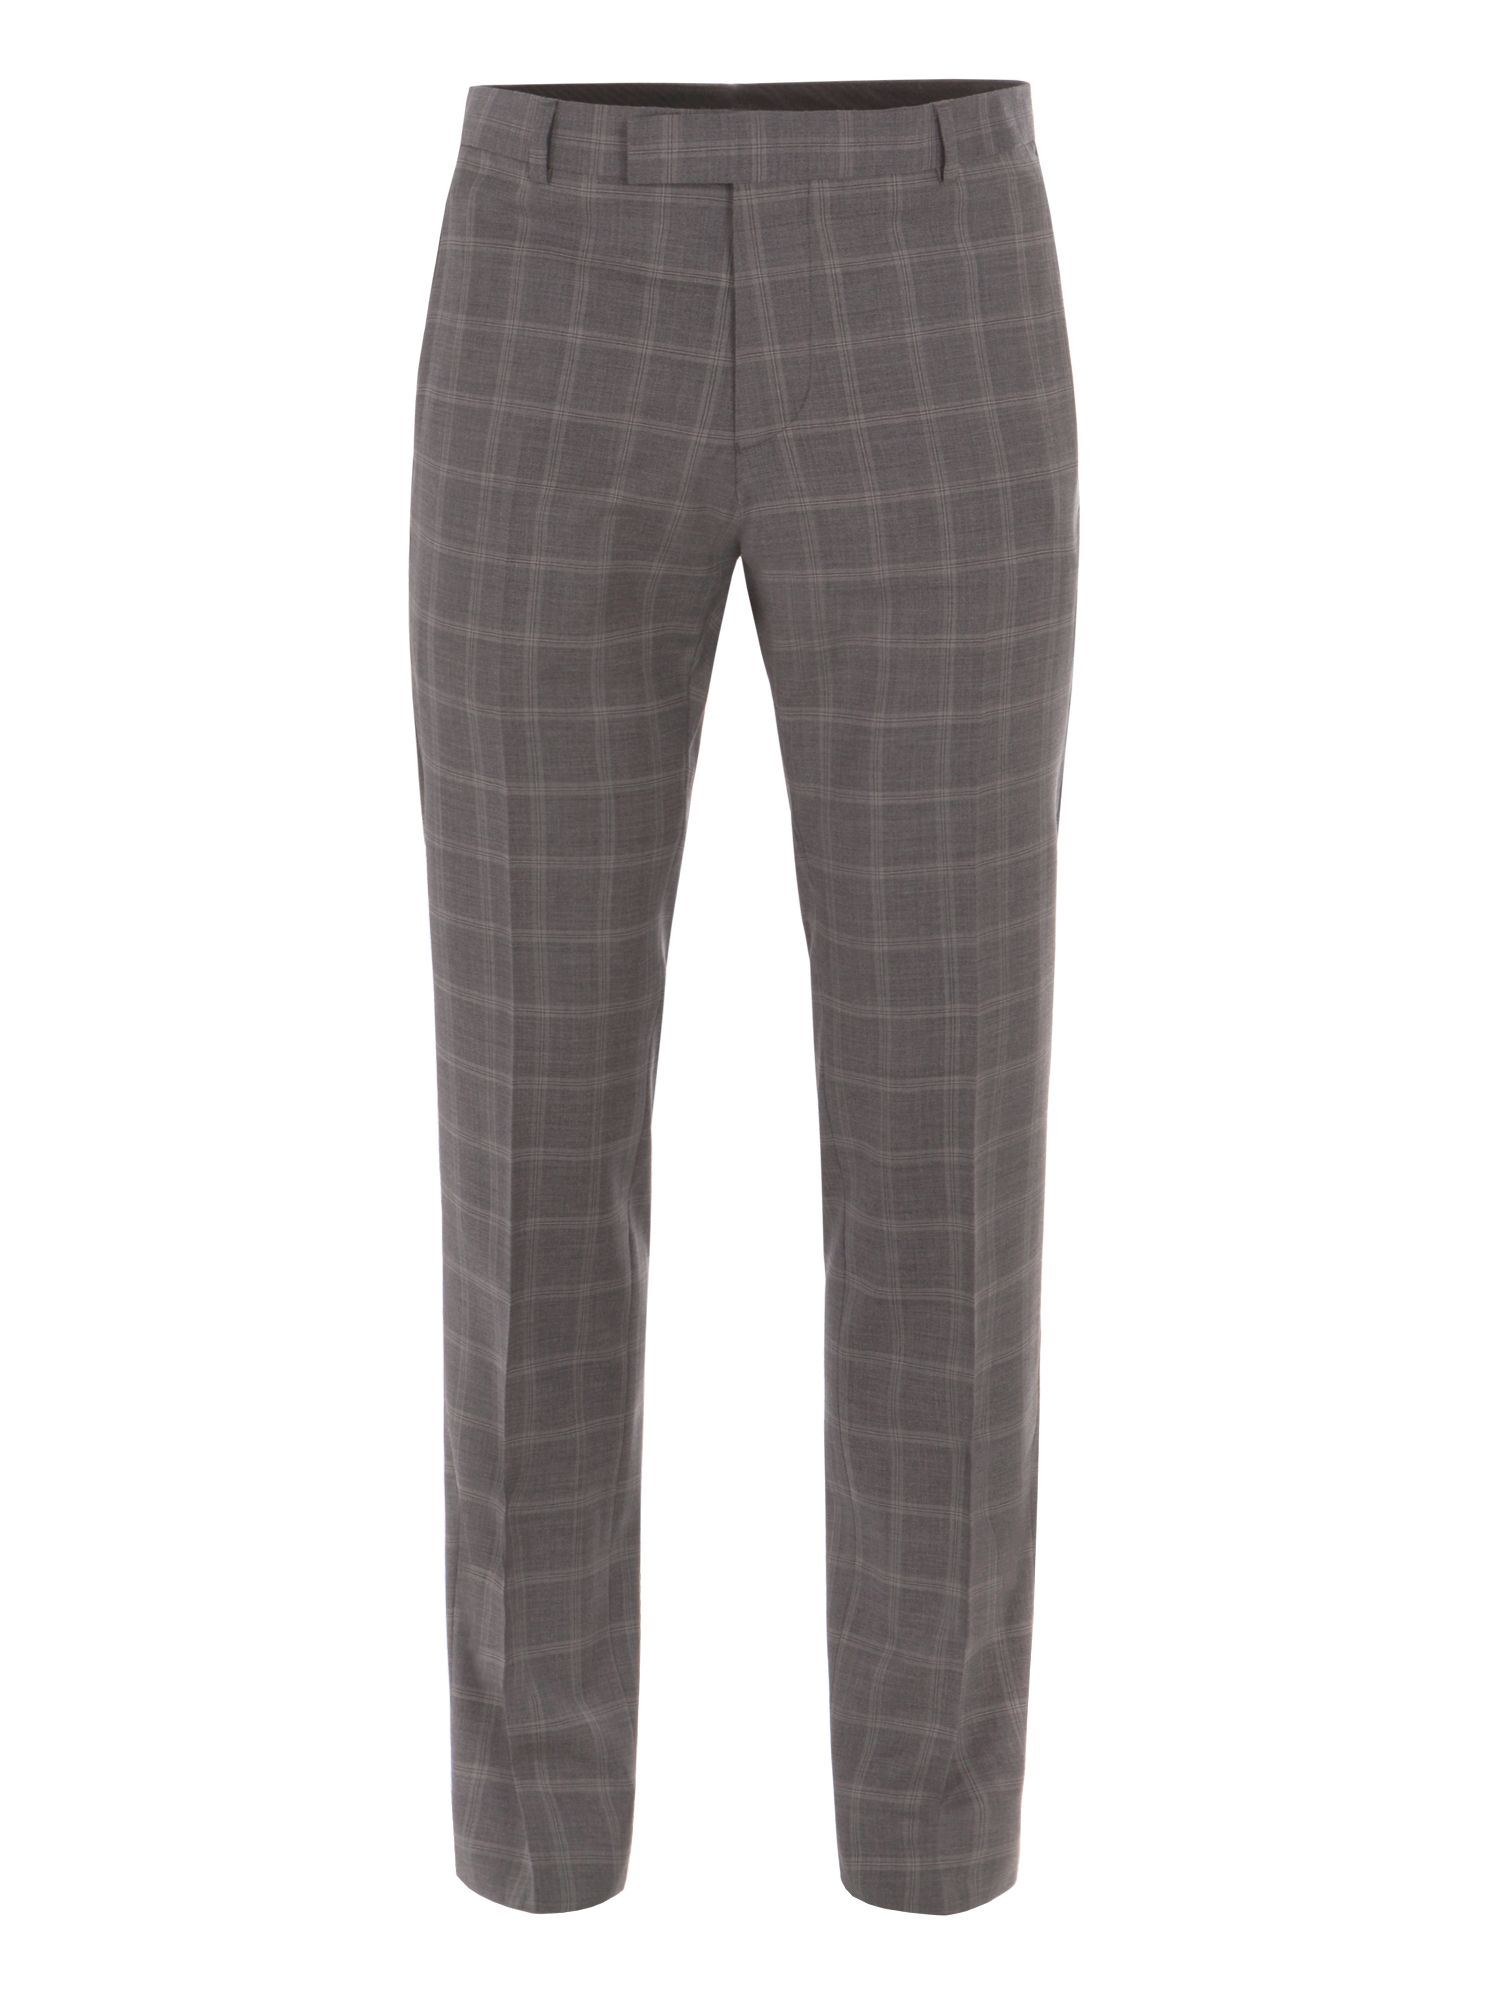 Alexandre of England Men's Alexandre of England Crosswall Grey Check Suit Trouser, Grey